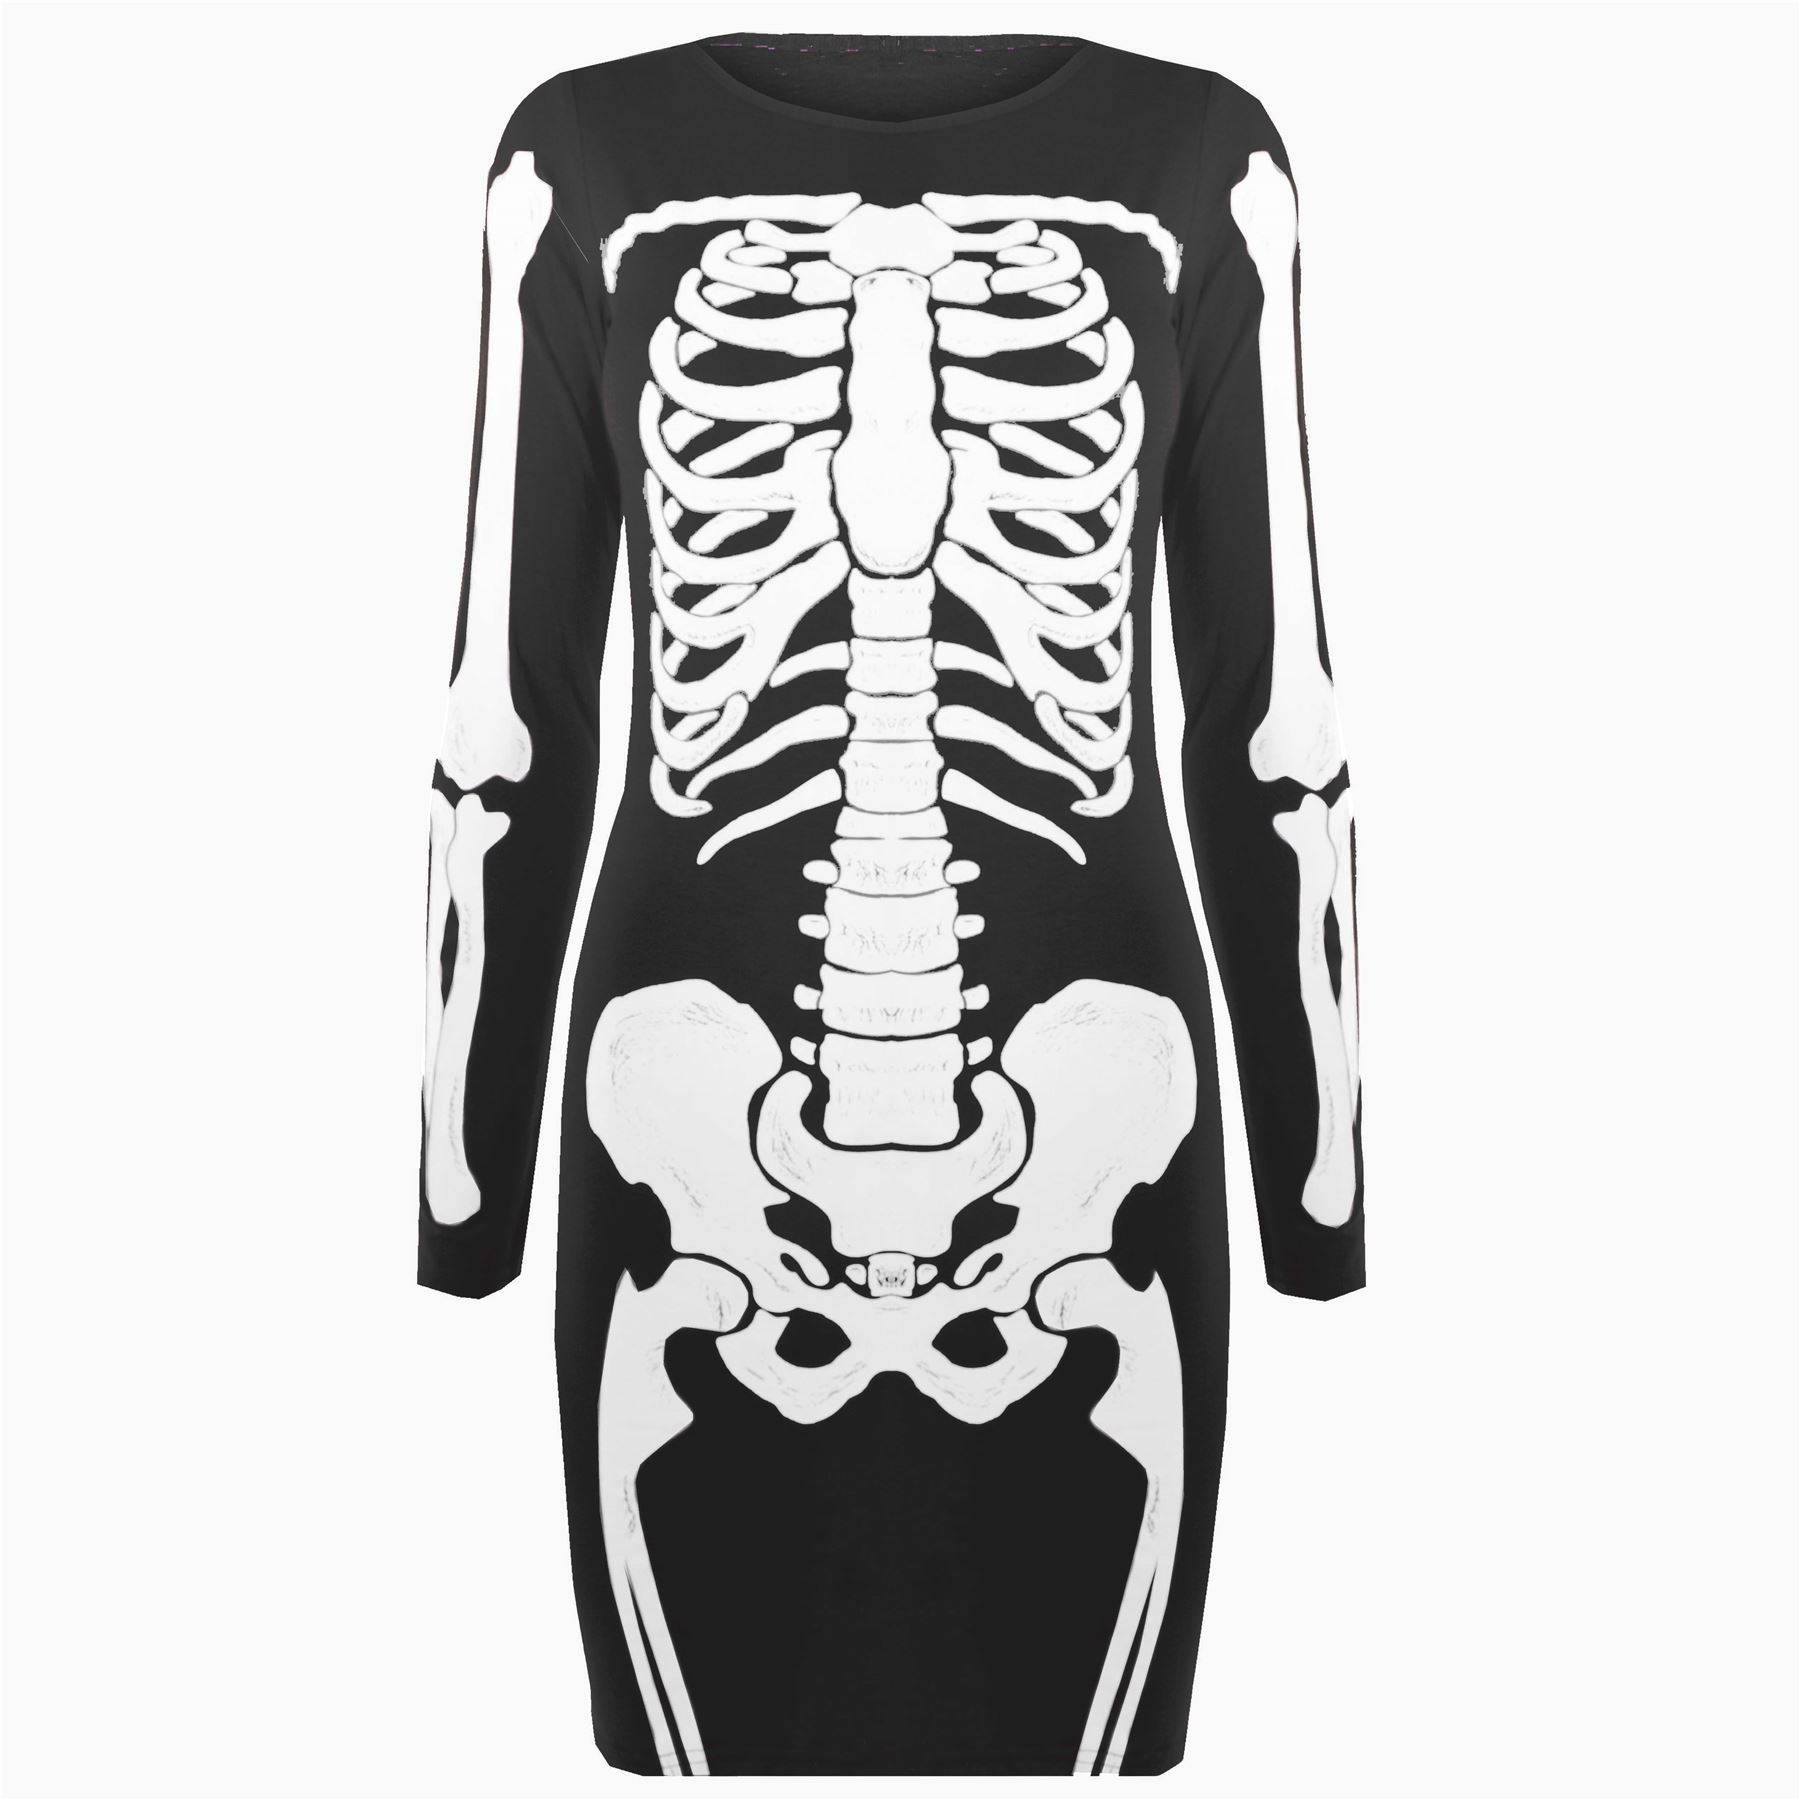 Damen Halloween Trikot Skelett Knochen Enganliegende Tunika T-shirt ...